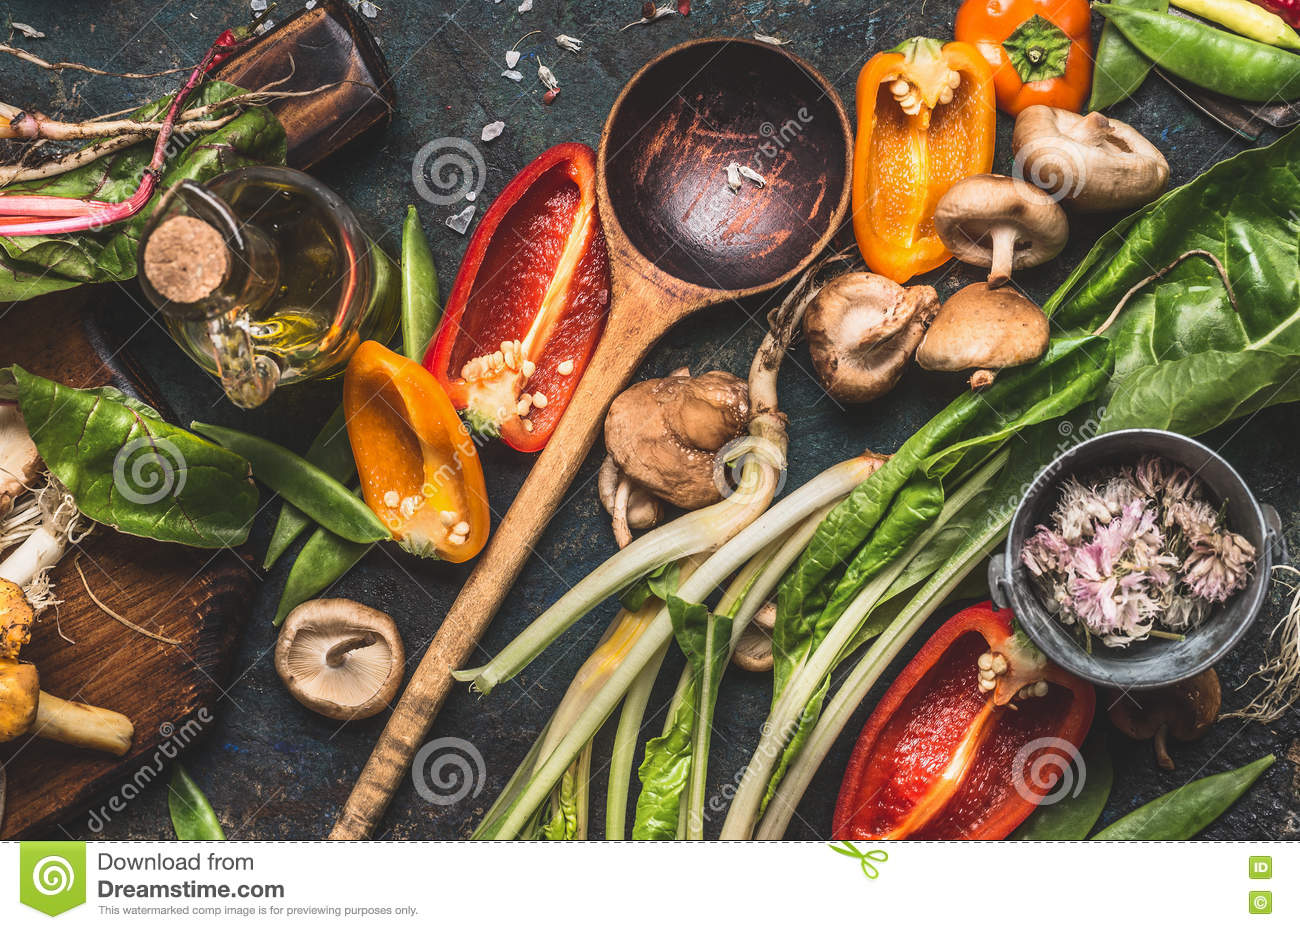 Various fresh vegetables with wooden cooking spoon for healthy eating and nutrition on dark rustic background